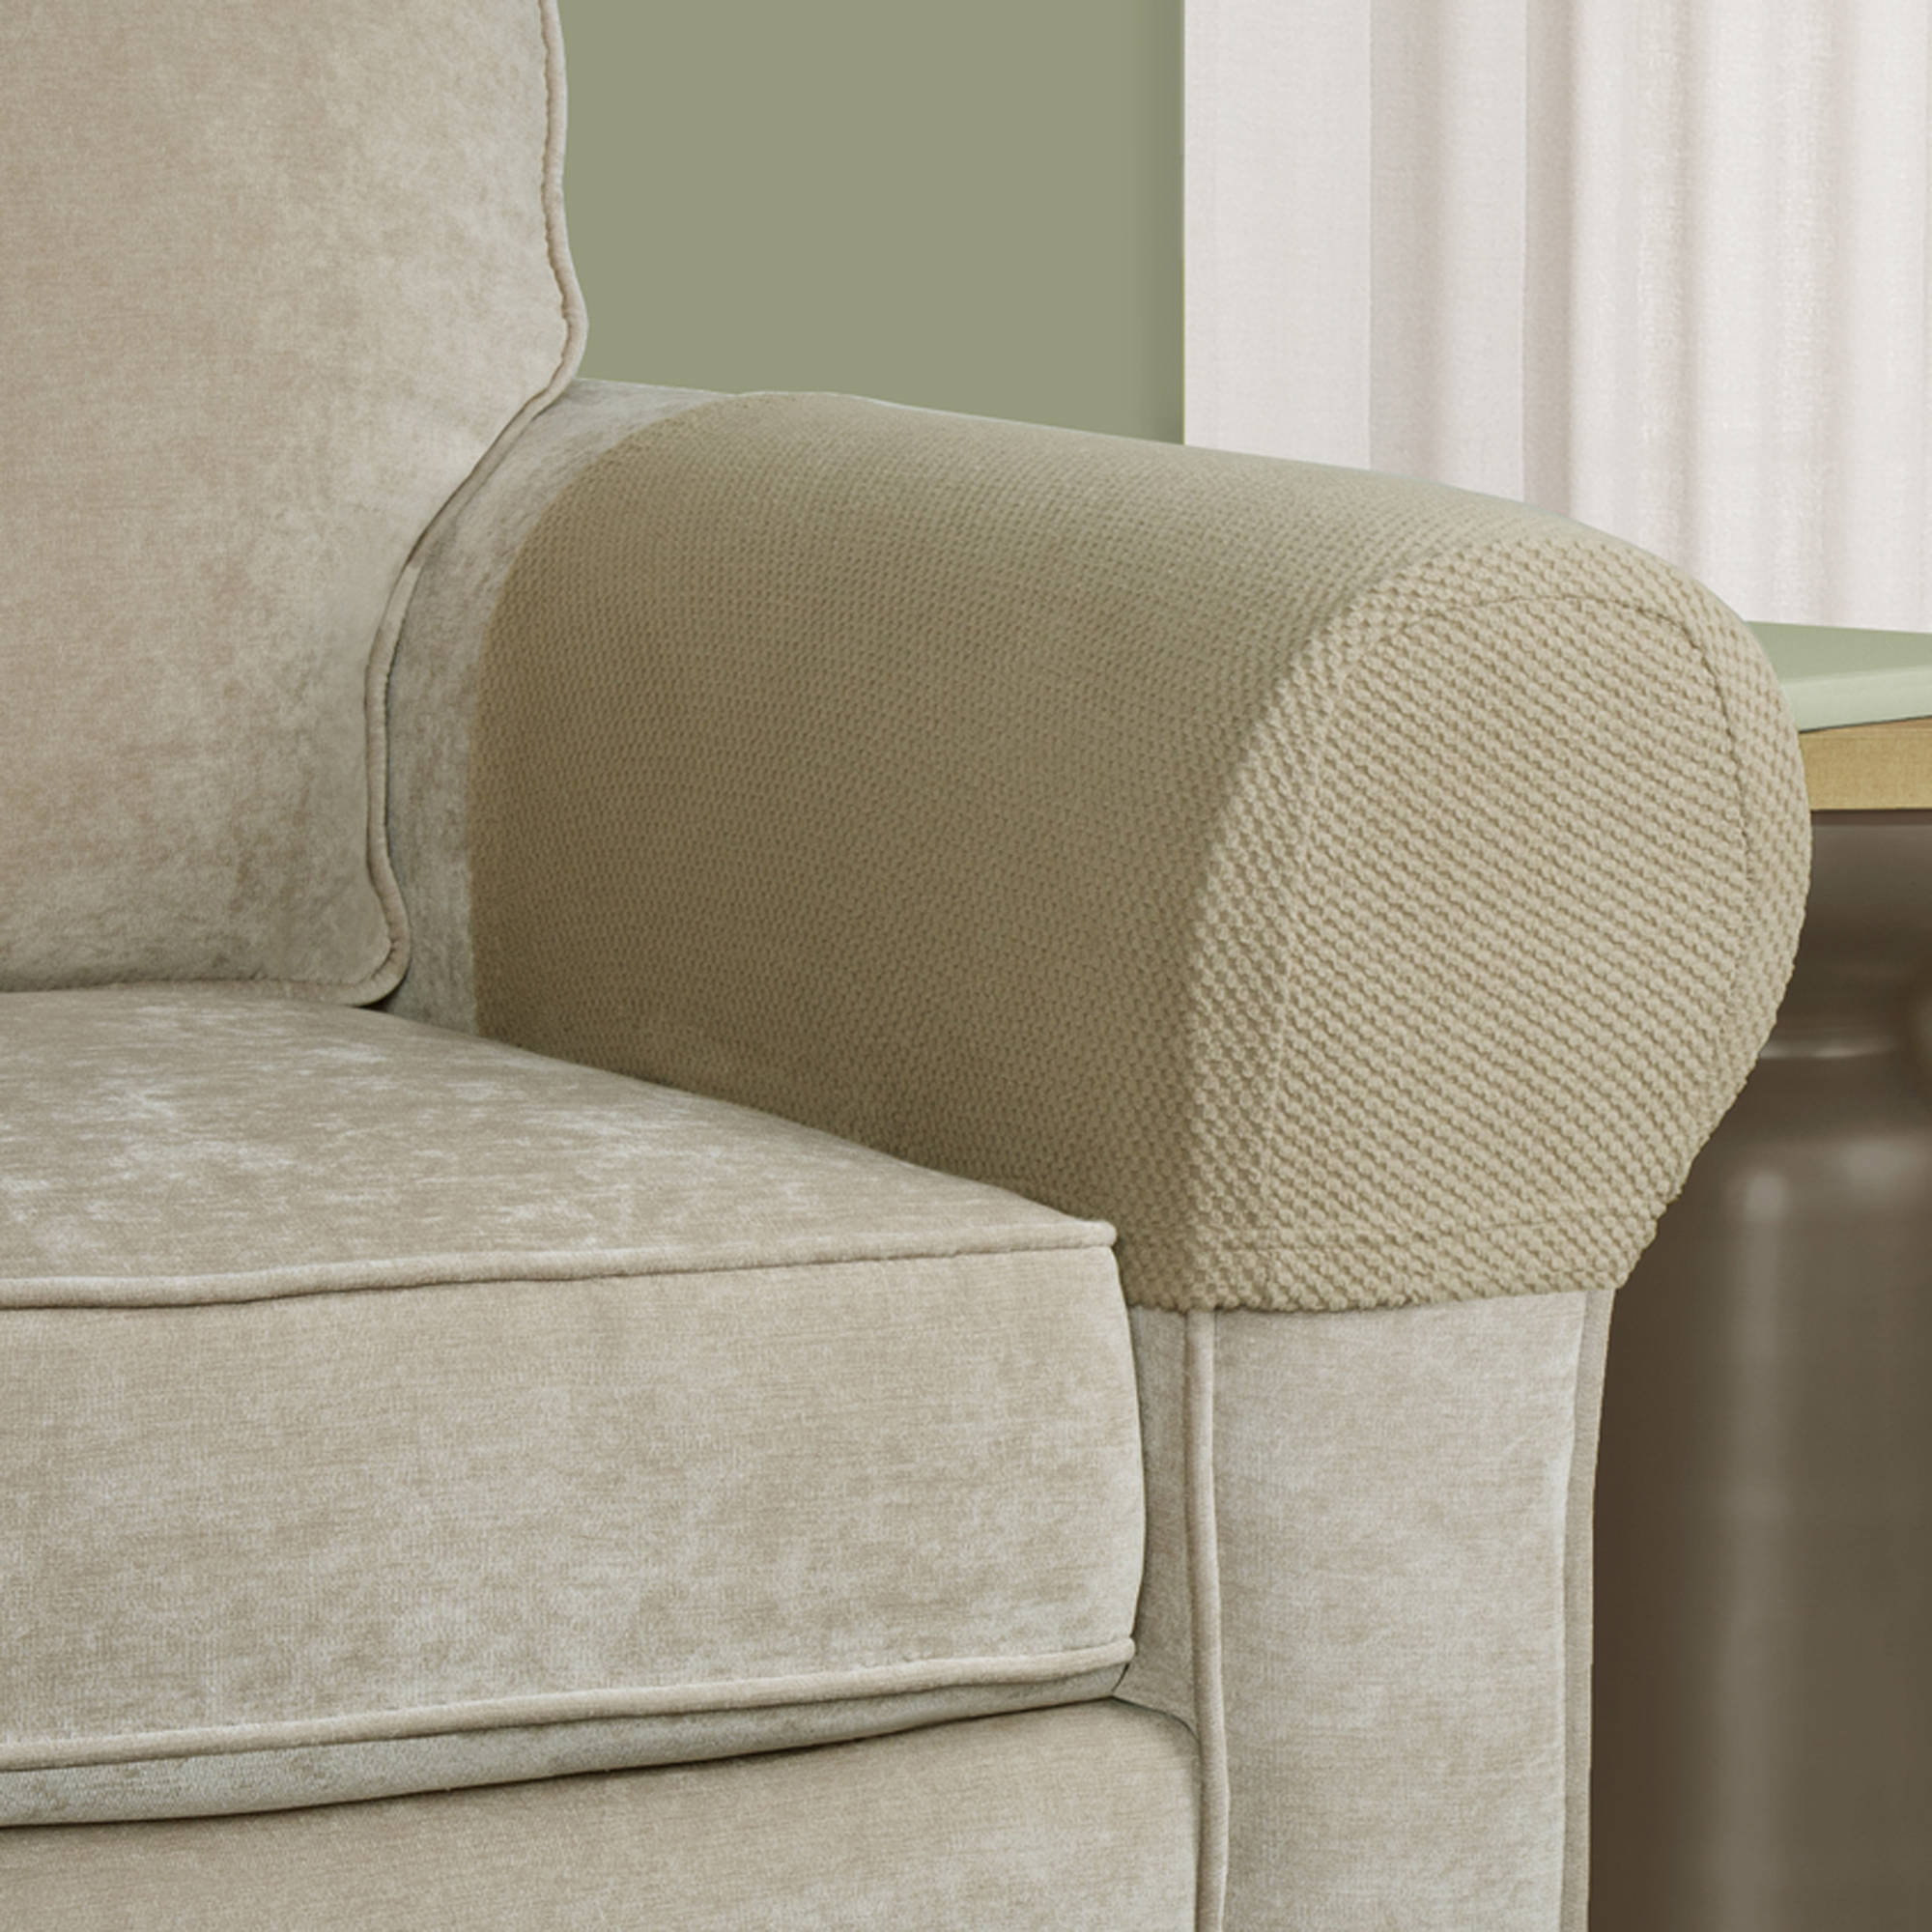 Newest Slipcovers For Chairs And Sofas With Regard To Furniture: Sofa Covers At Walmart For A Slightly Loose And Casual (View 11 of 20)